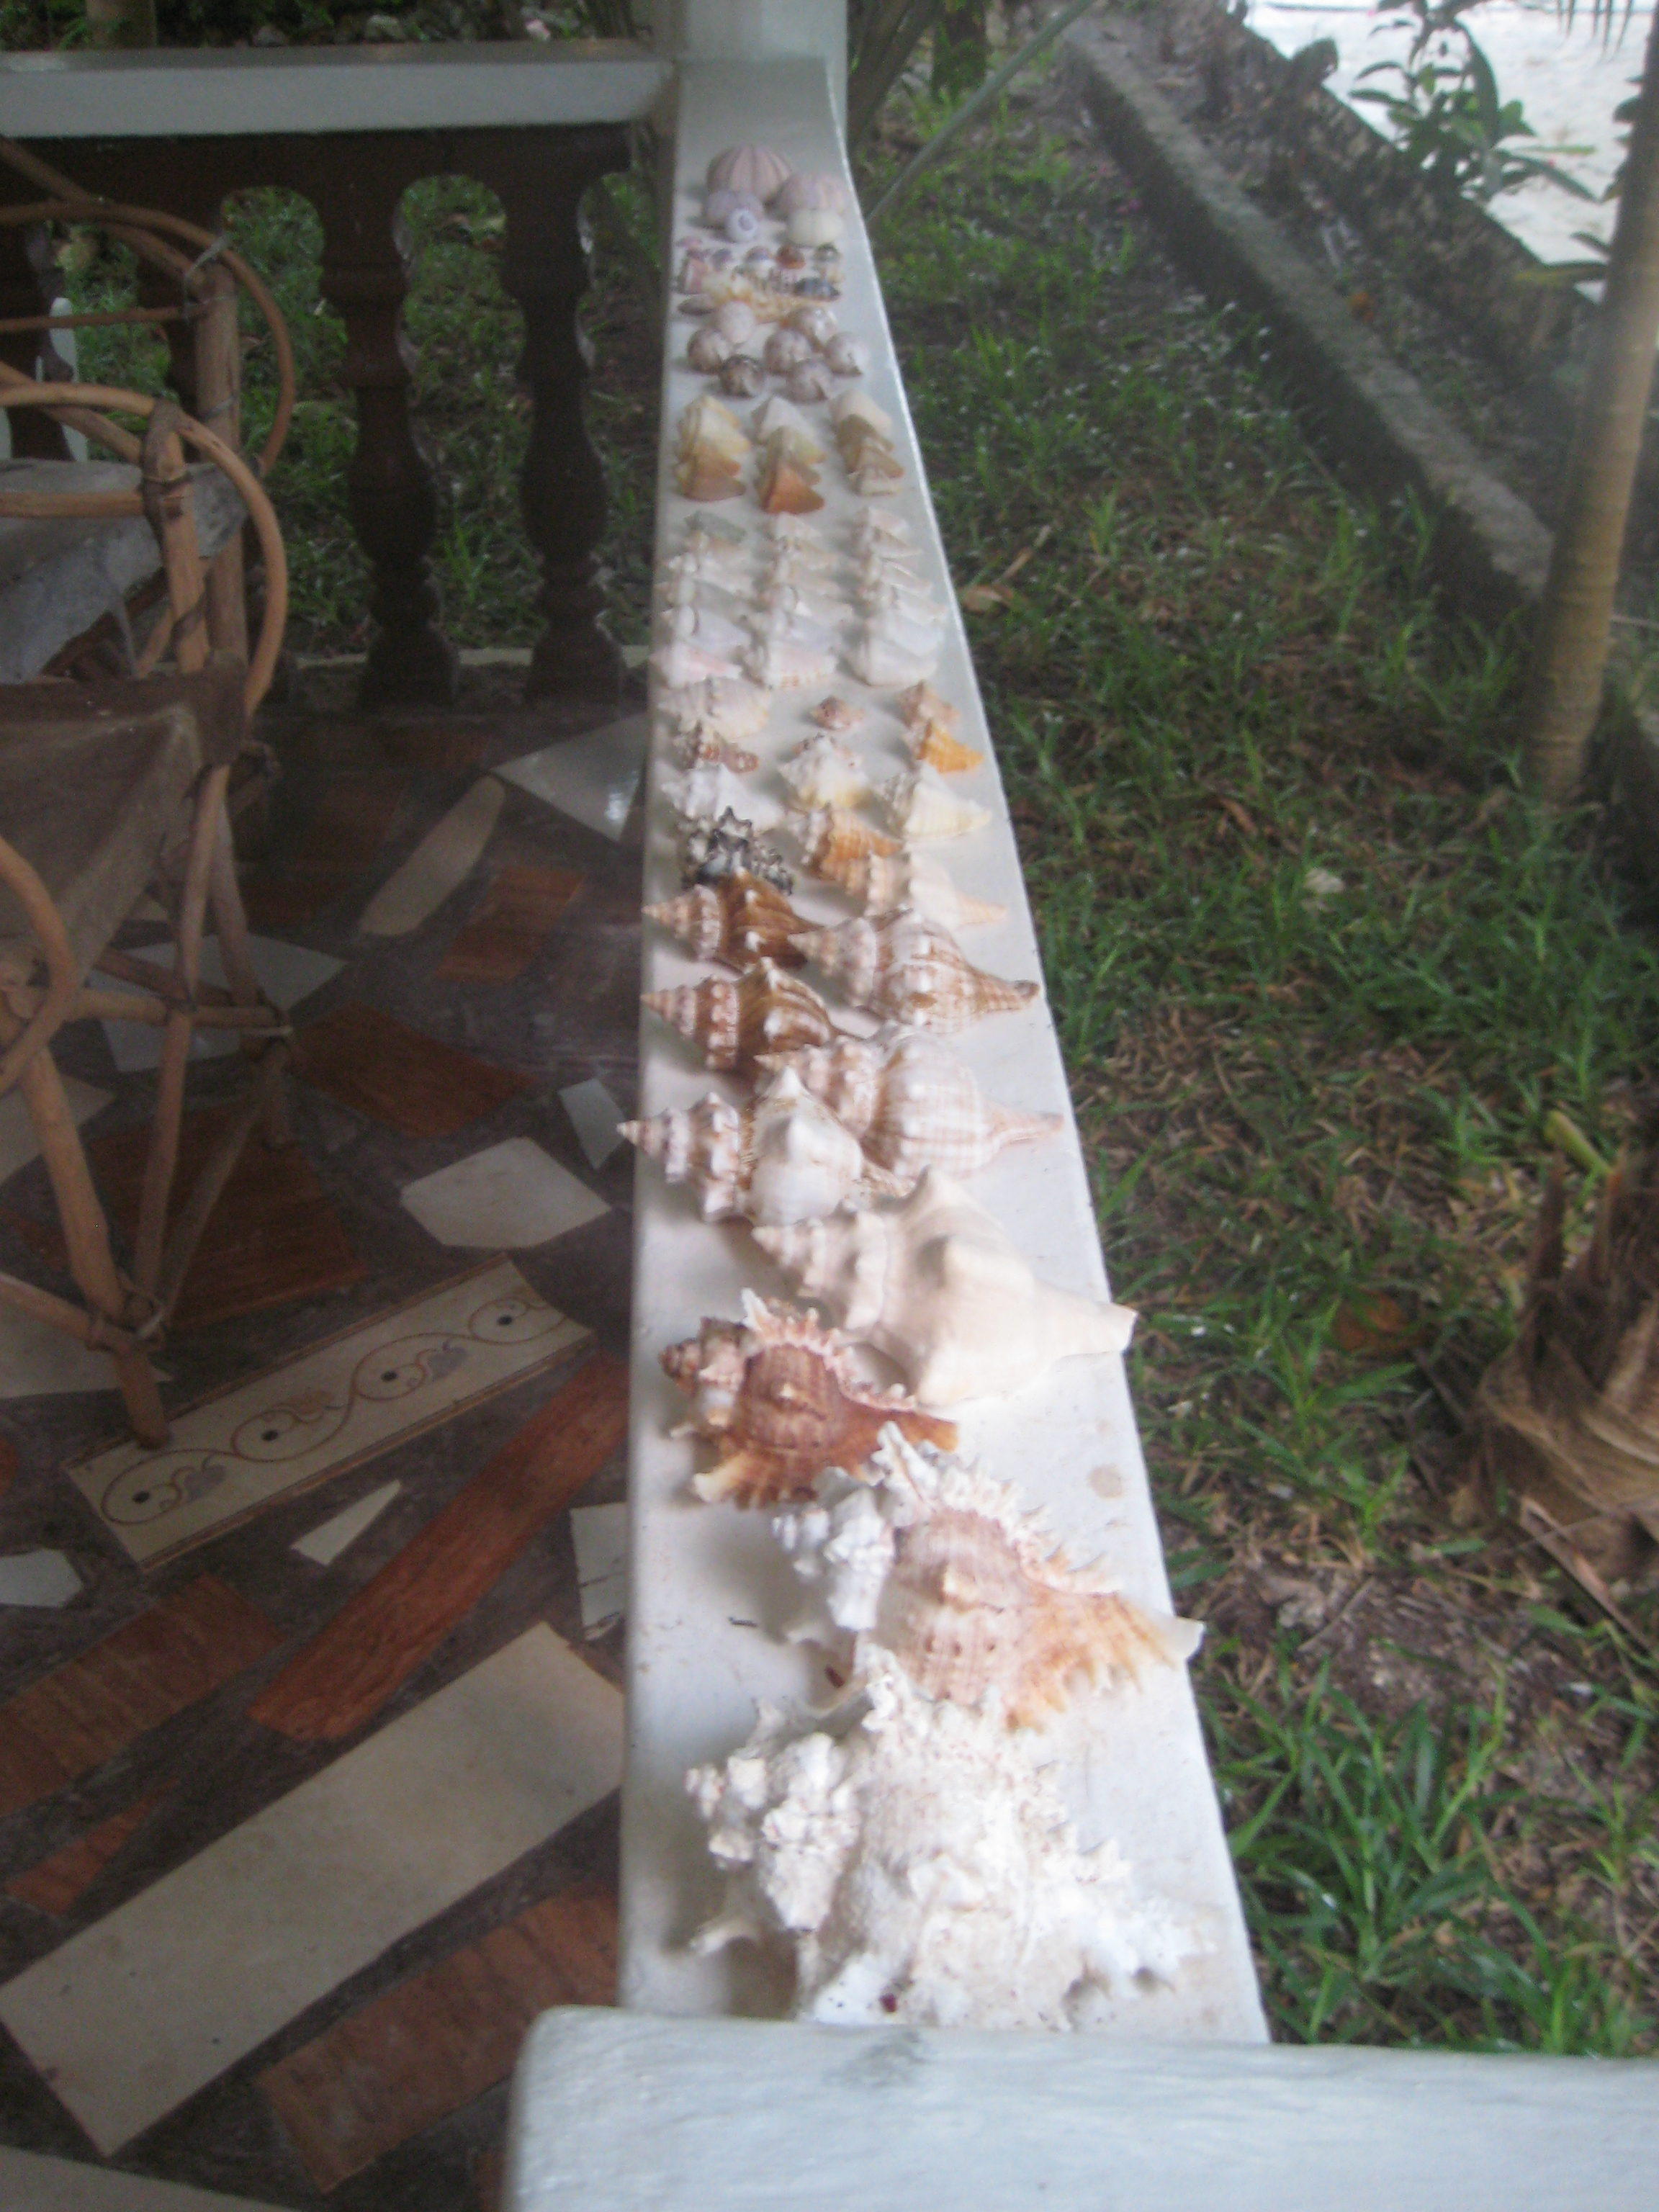 Zanzibar Shells used for the marriage proposal